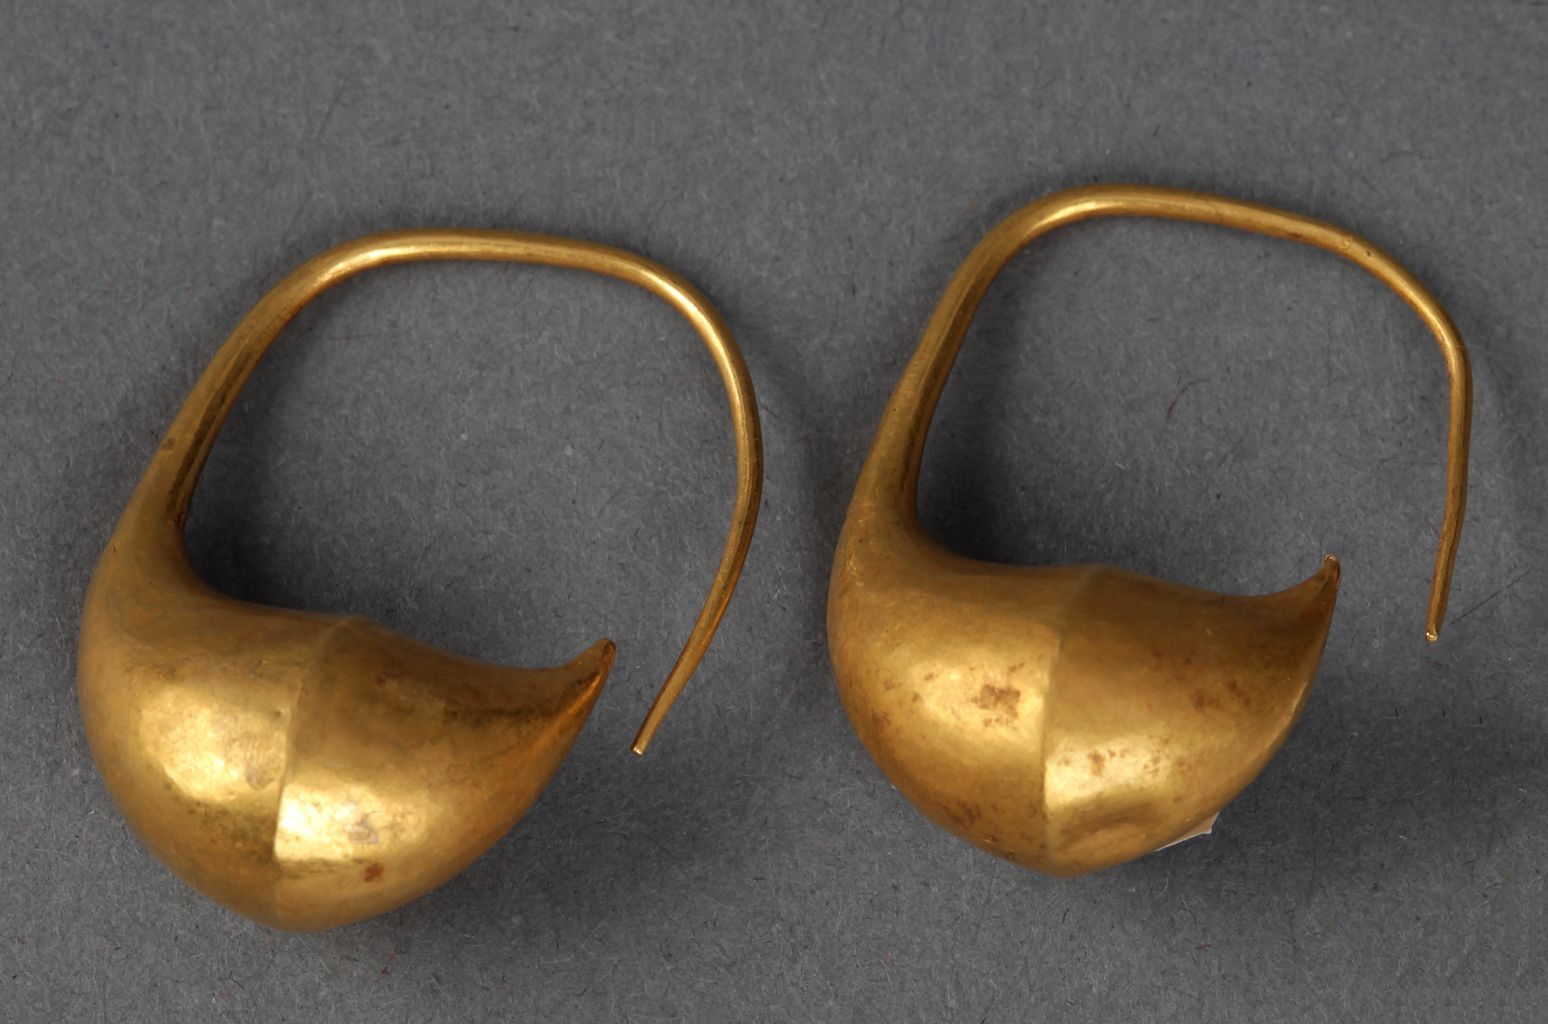 Pair of boat-shaped earrings